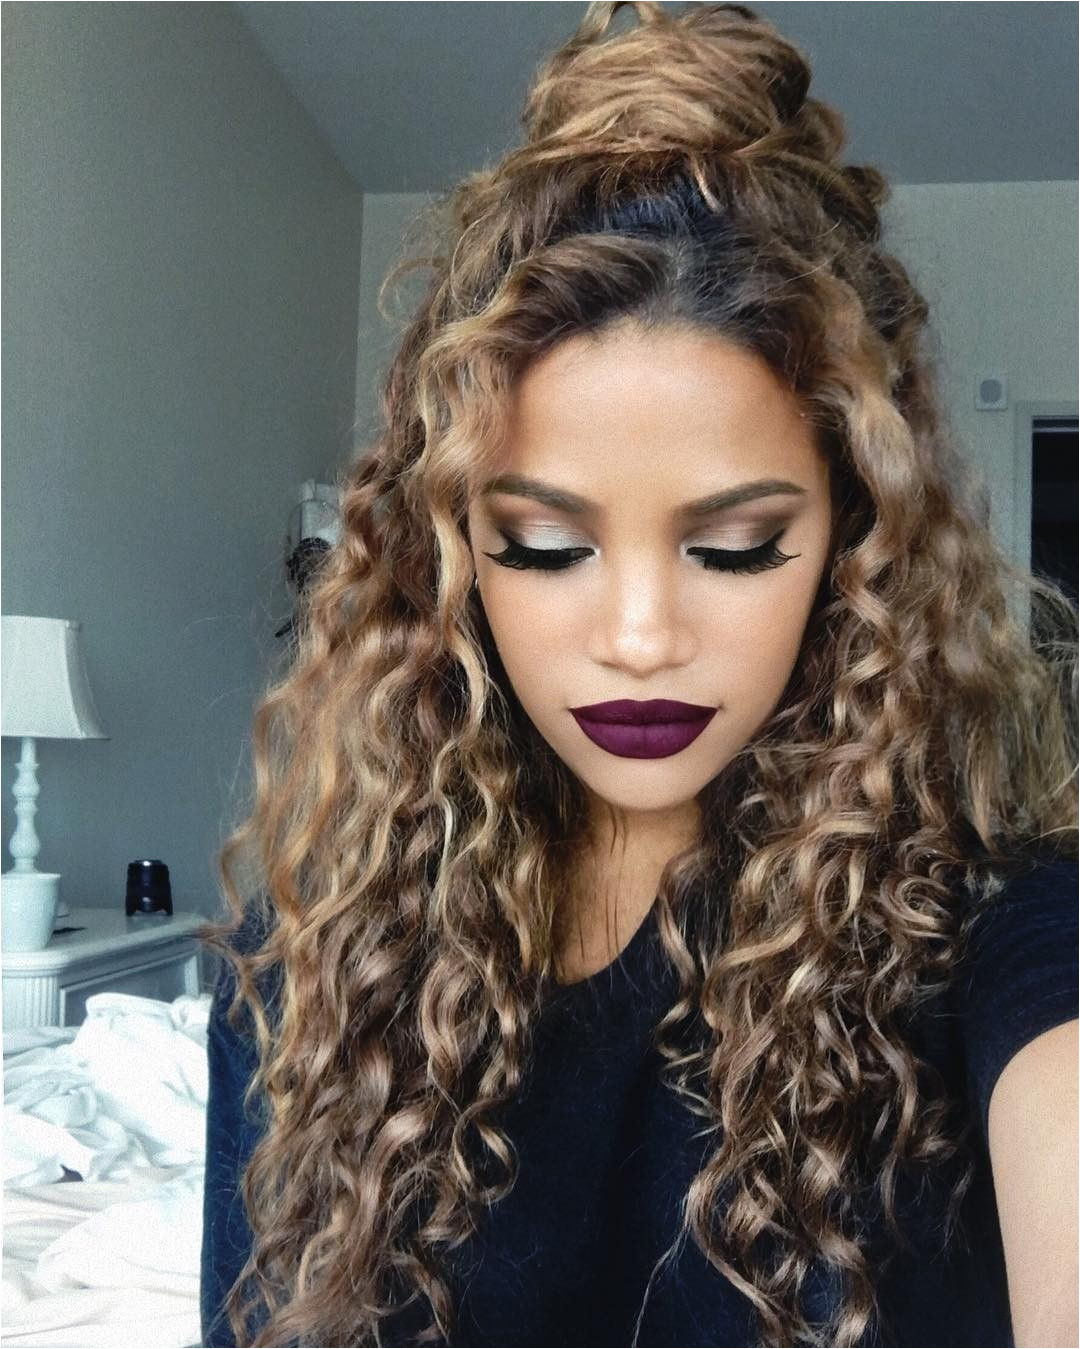 Dyed Curly Hair Colored Curly Hair Black Curly Hair Curly Hair Tips